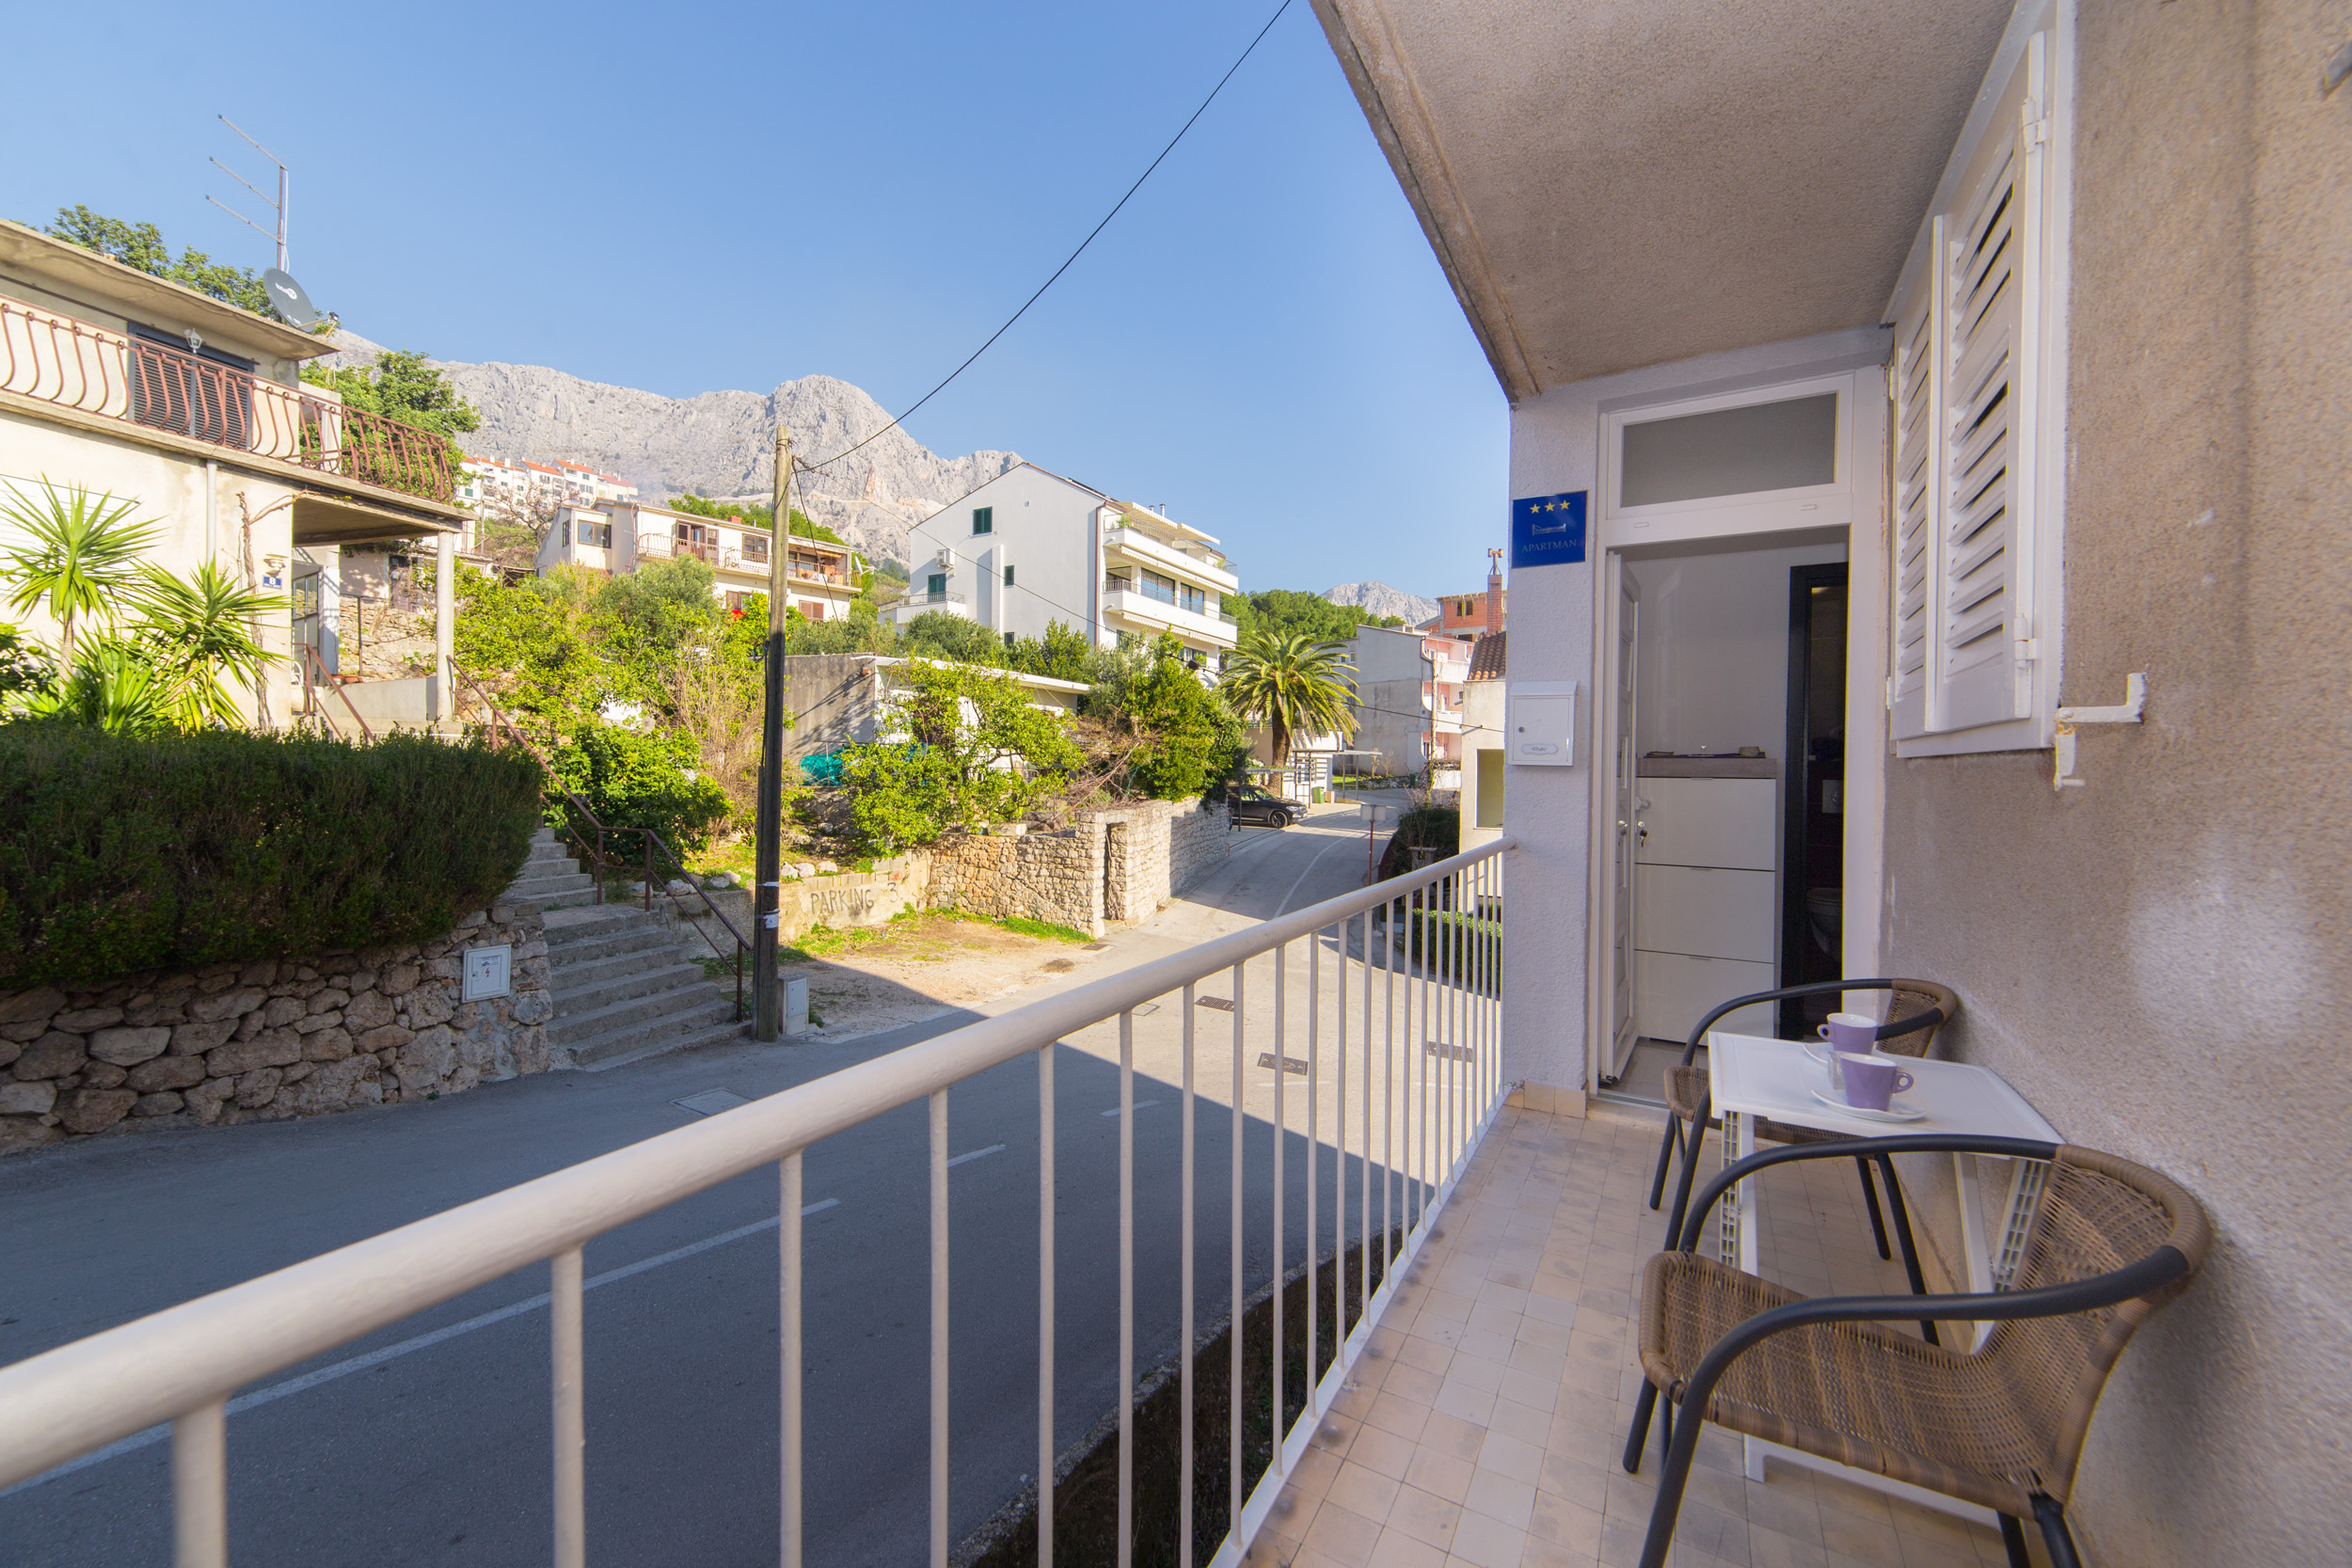 Apartment in Podgora